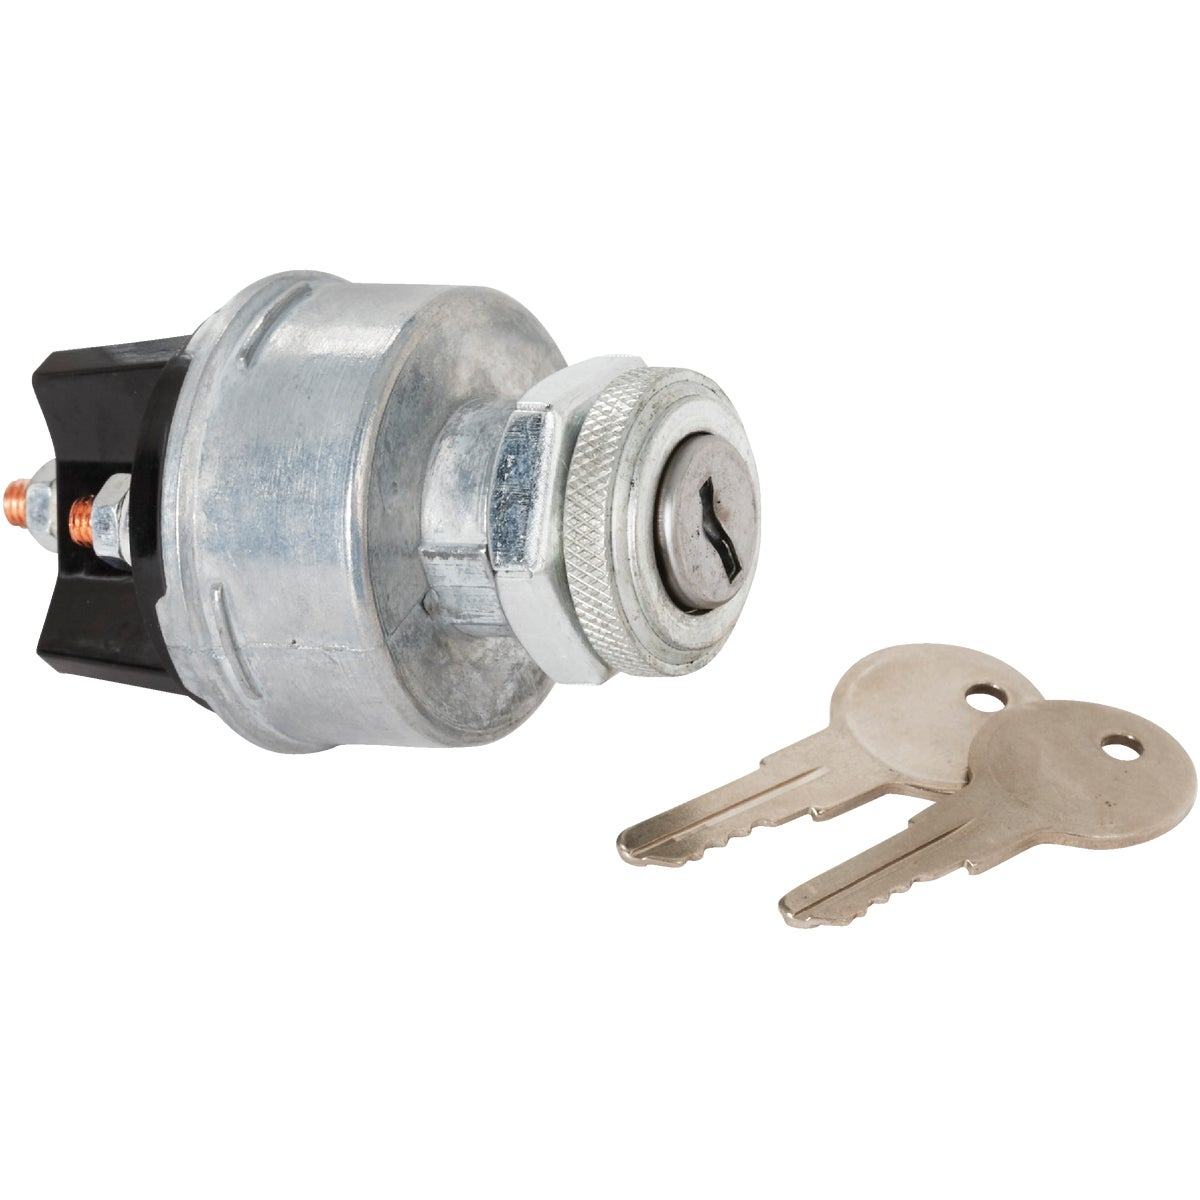 IGNITION SWITCH - 42410 by G B Electrical Inc